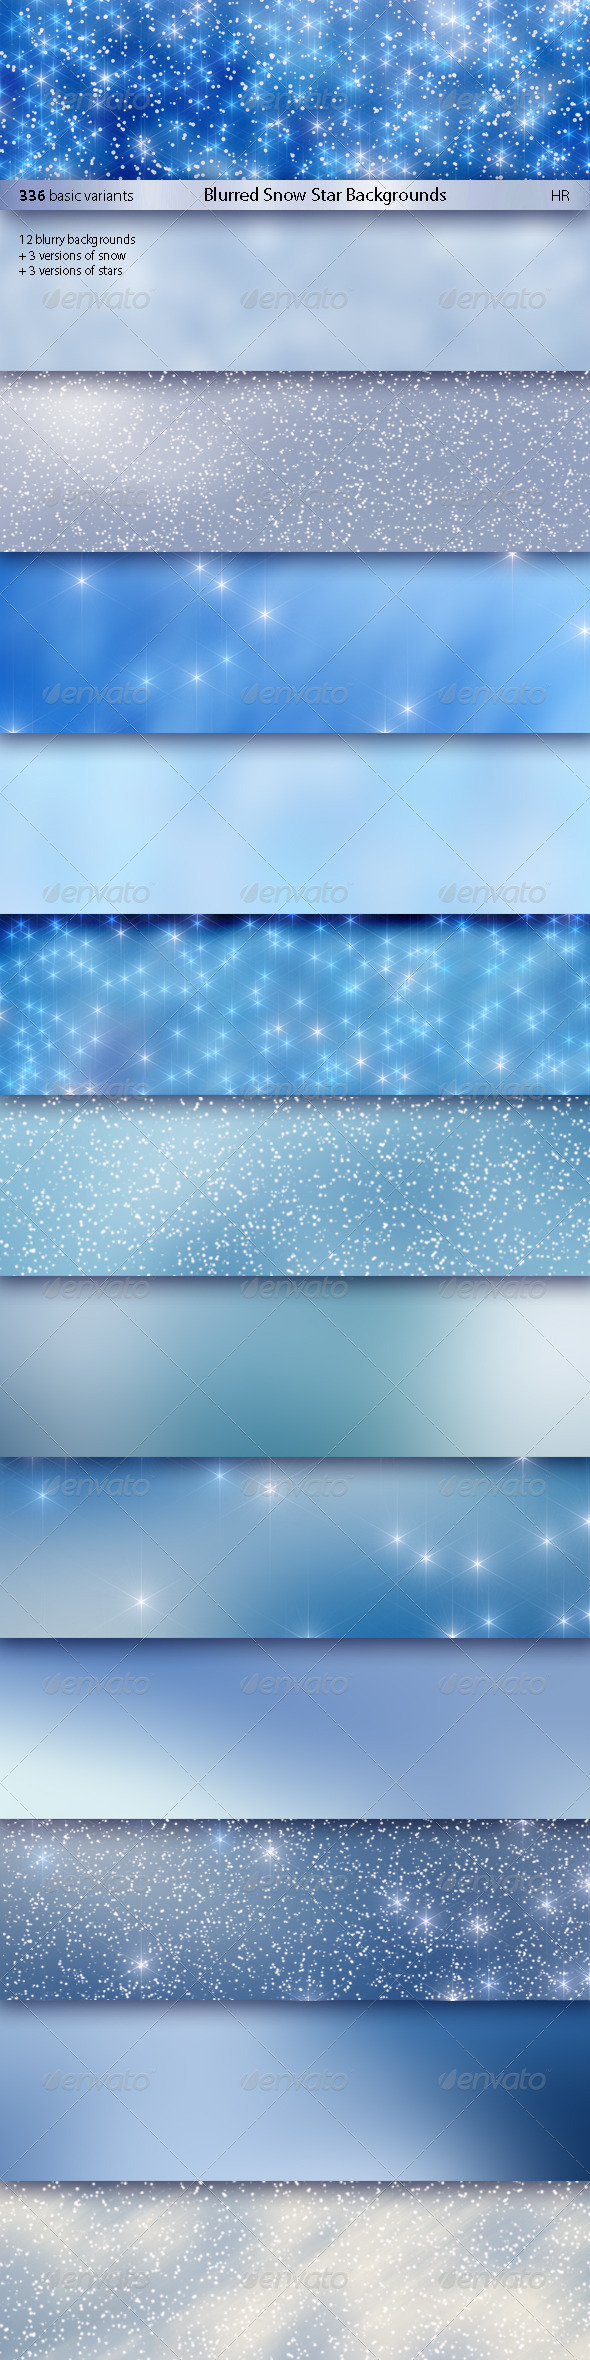 Blurred Snow Star Backgrounds - Abstract Backgrounds